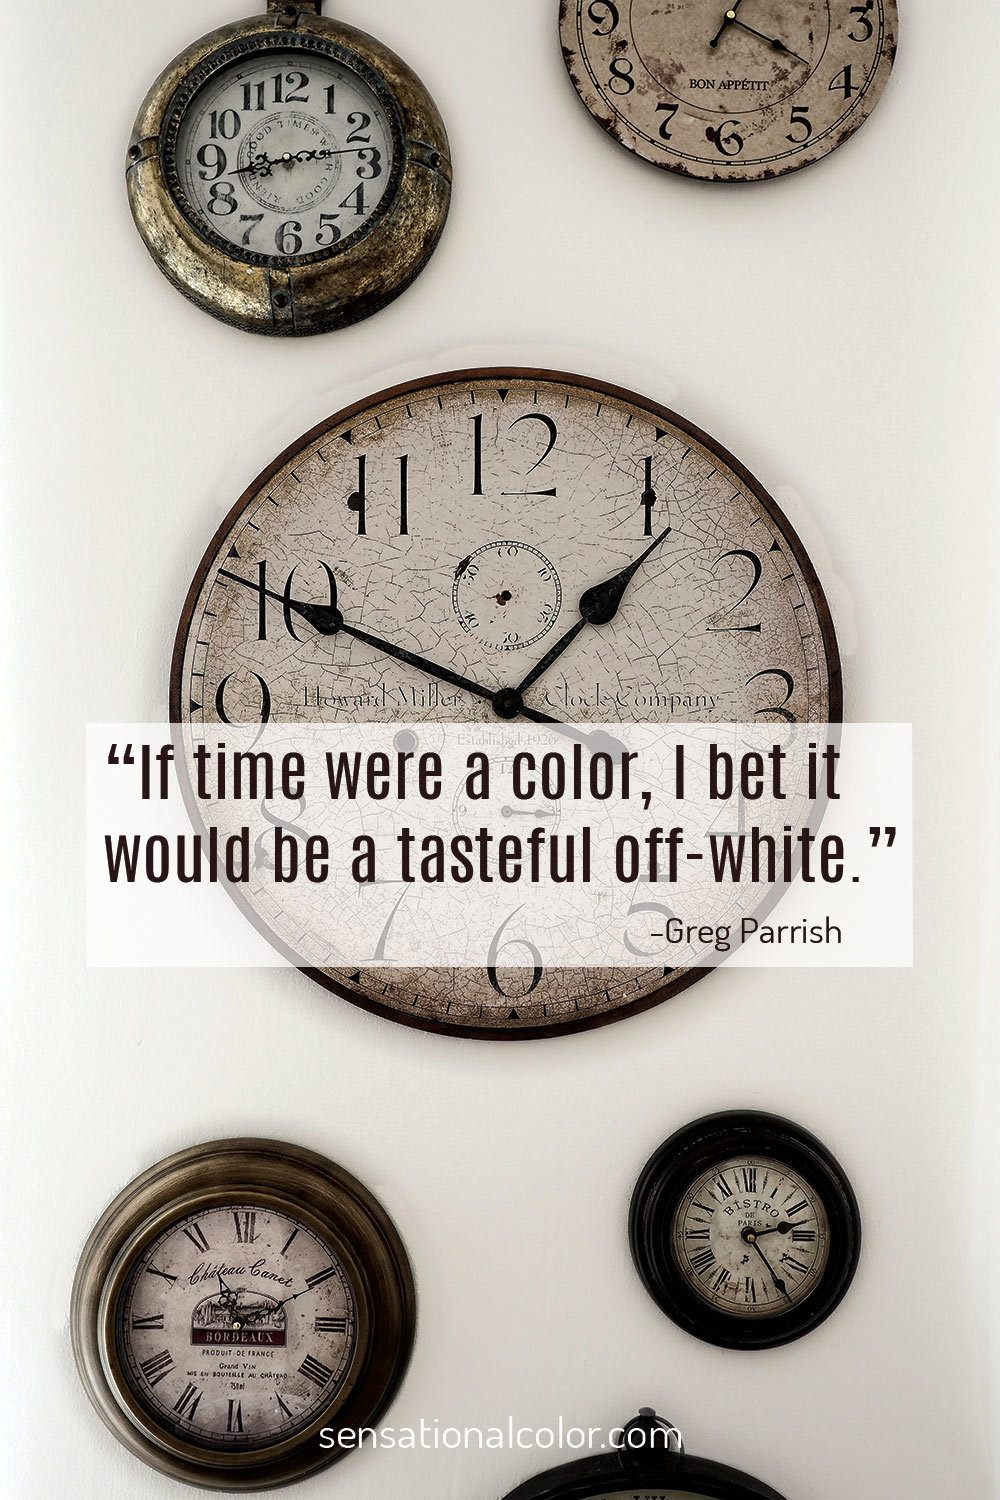 """If time were a color, I bet it would be a tasteful off-white."" - Greg Parrish"